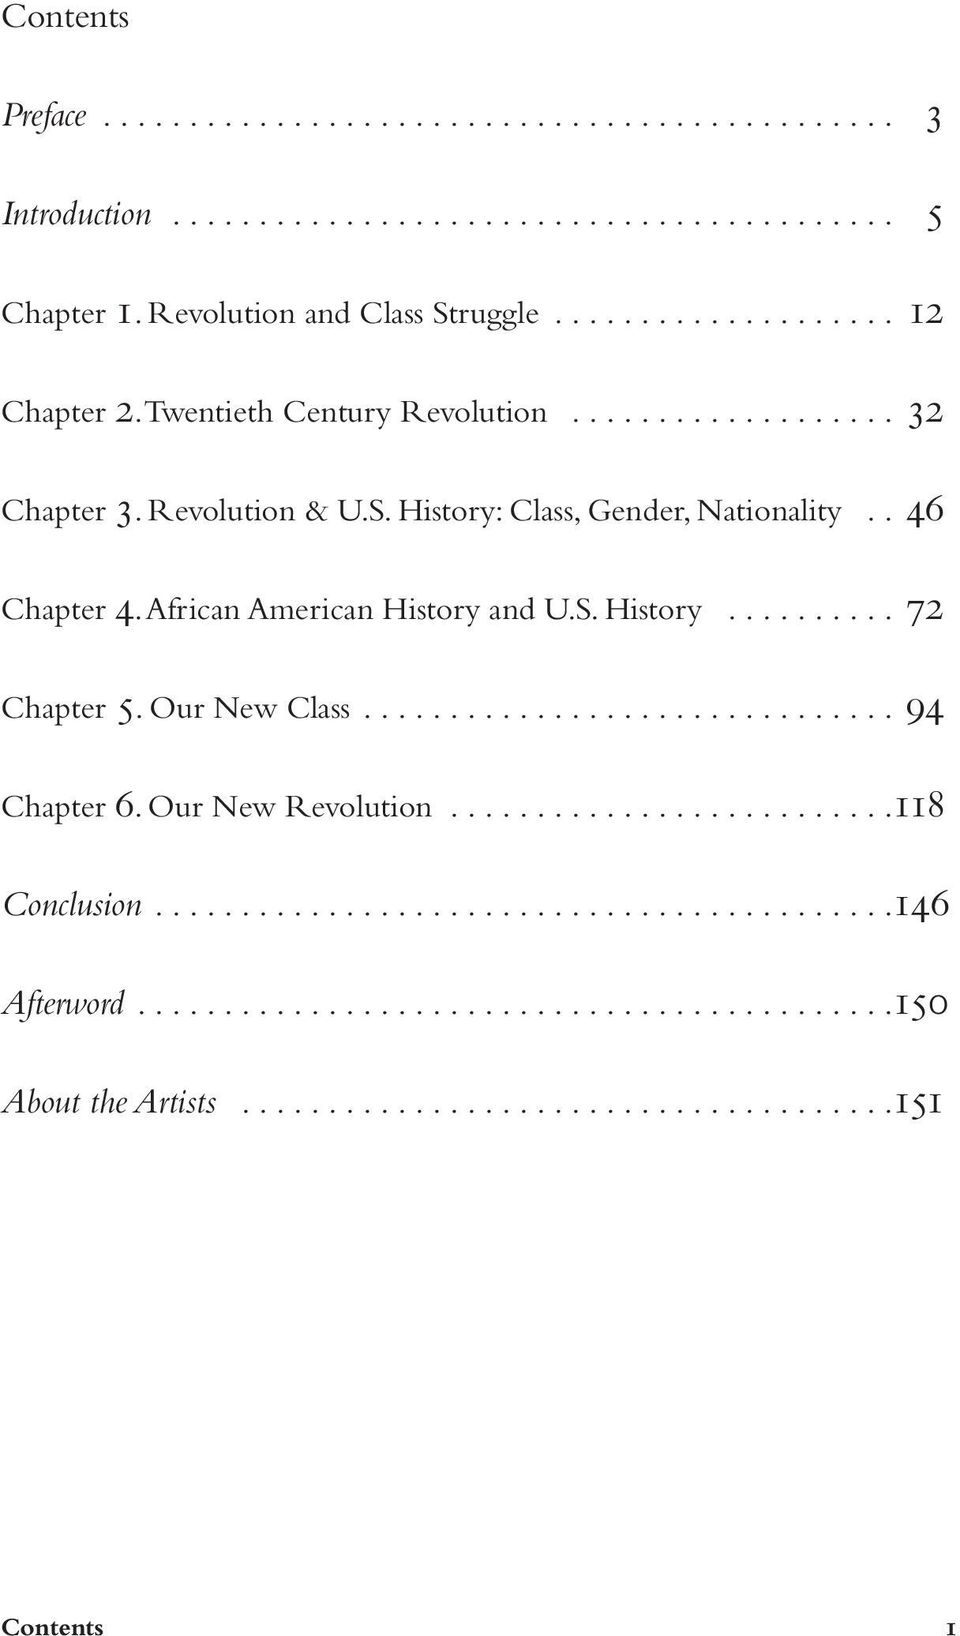 African American History and U.S. History.......... 72 Chapter 5. Our New Class............................... 94 Chapter 6. Our New Revolution..........................118 Conclusion.